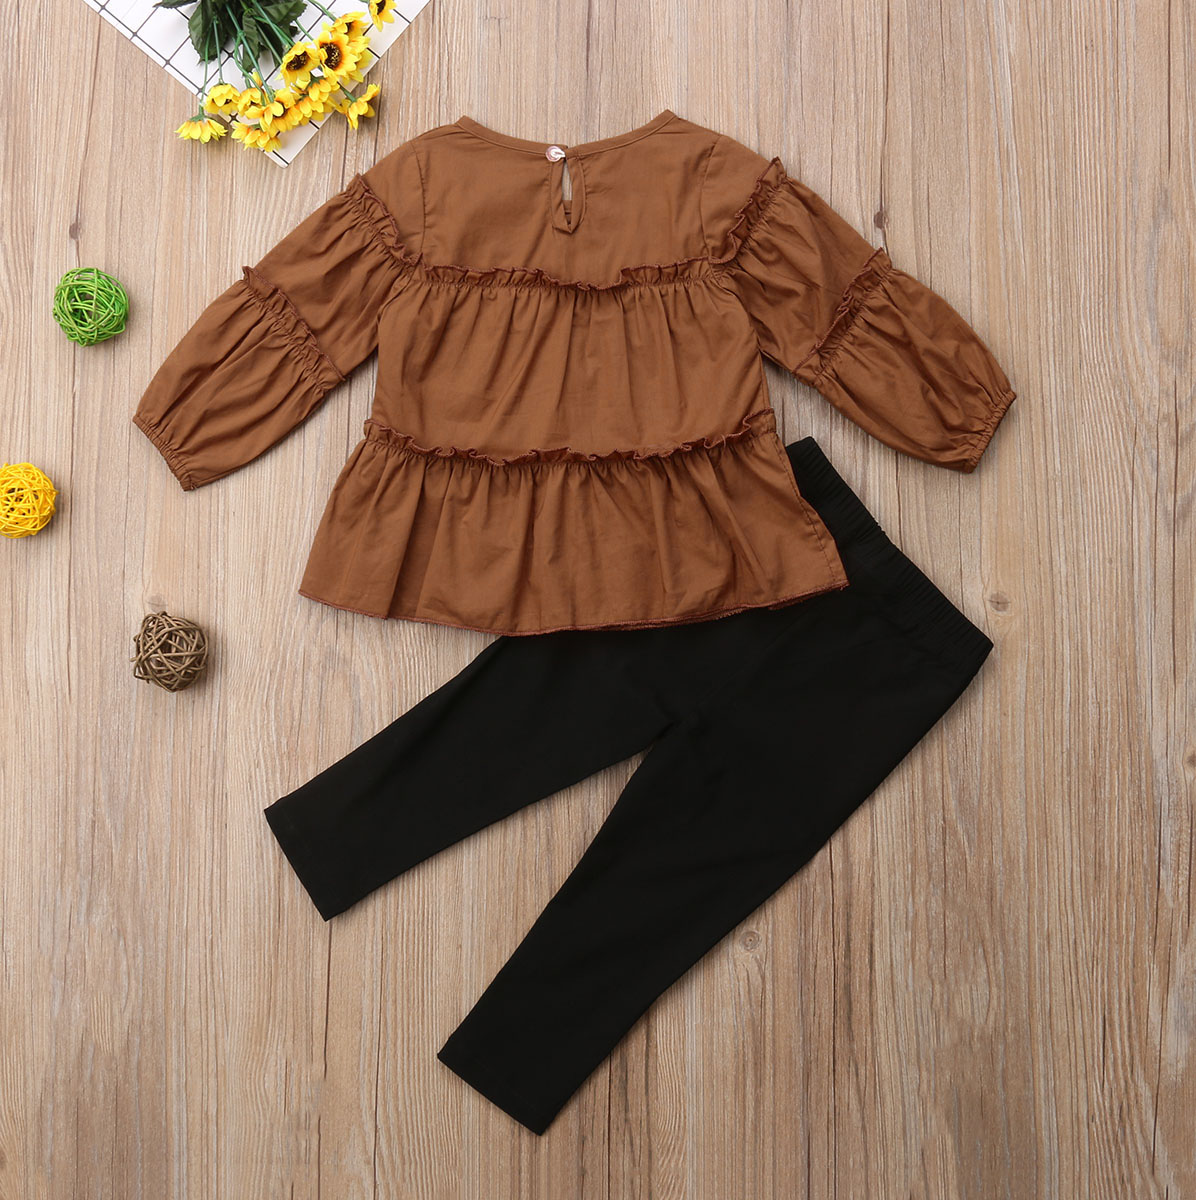 Autumn 2Pcs//Set Girls Pleated Outfits T-Shirt Tops+Long Sleeve Pants Clothes Sets